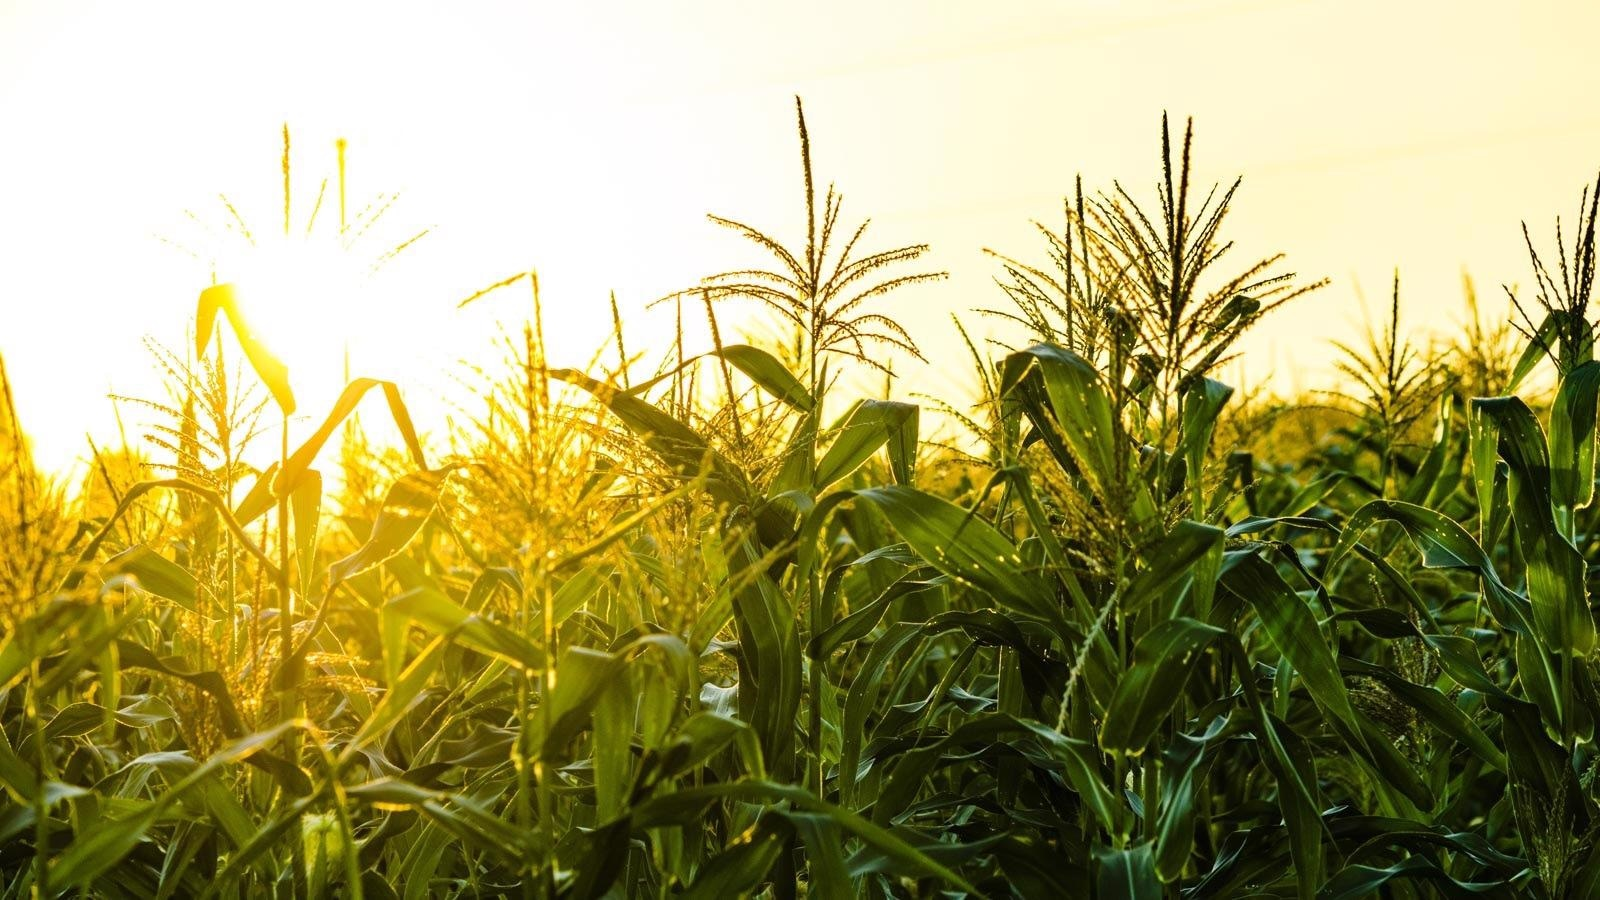 Innovation in Technologies and Agriculture Practices can Control Greenhouse Gas Emissions.